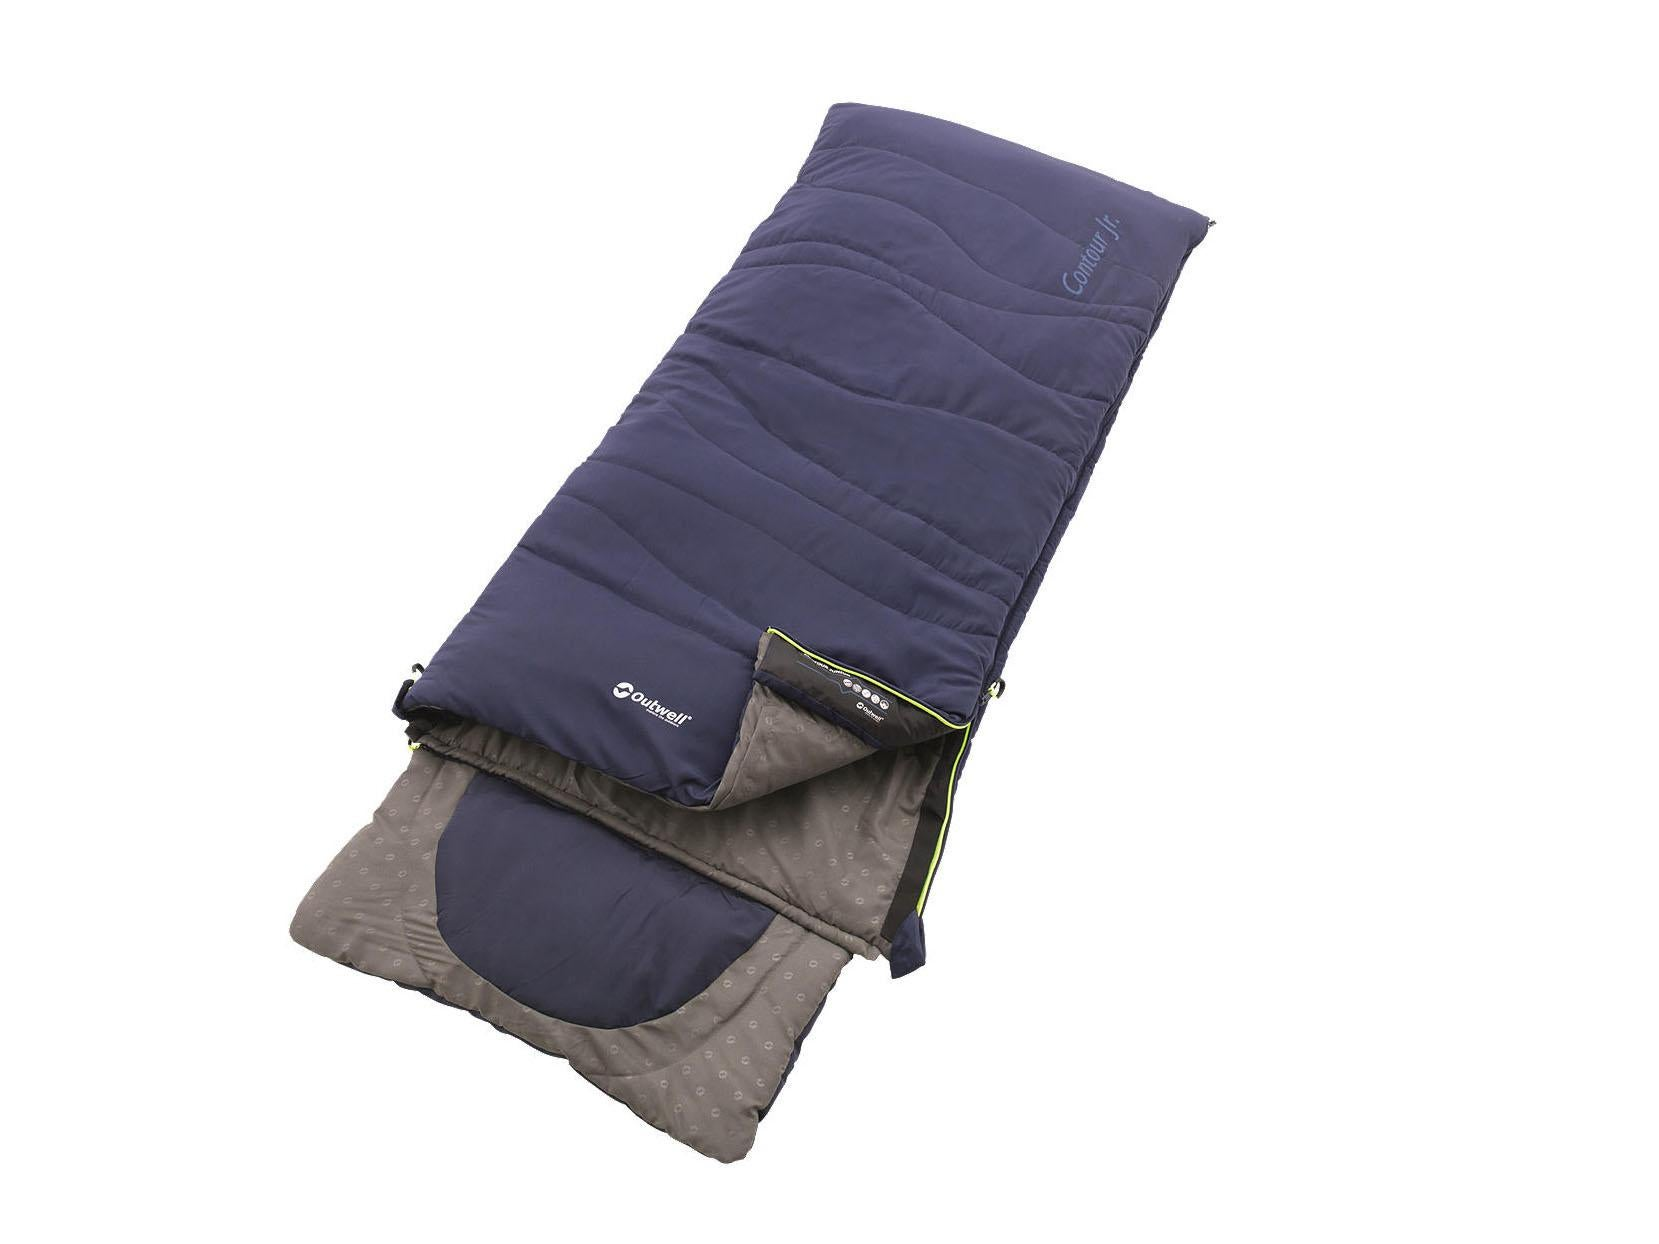 Big Tall Adult Size Sleeping Bag Portable Travel Outdoor Camping Hiking Trails